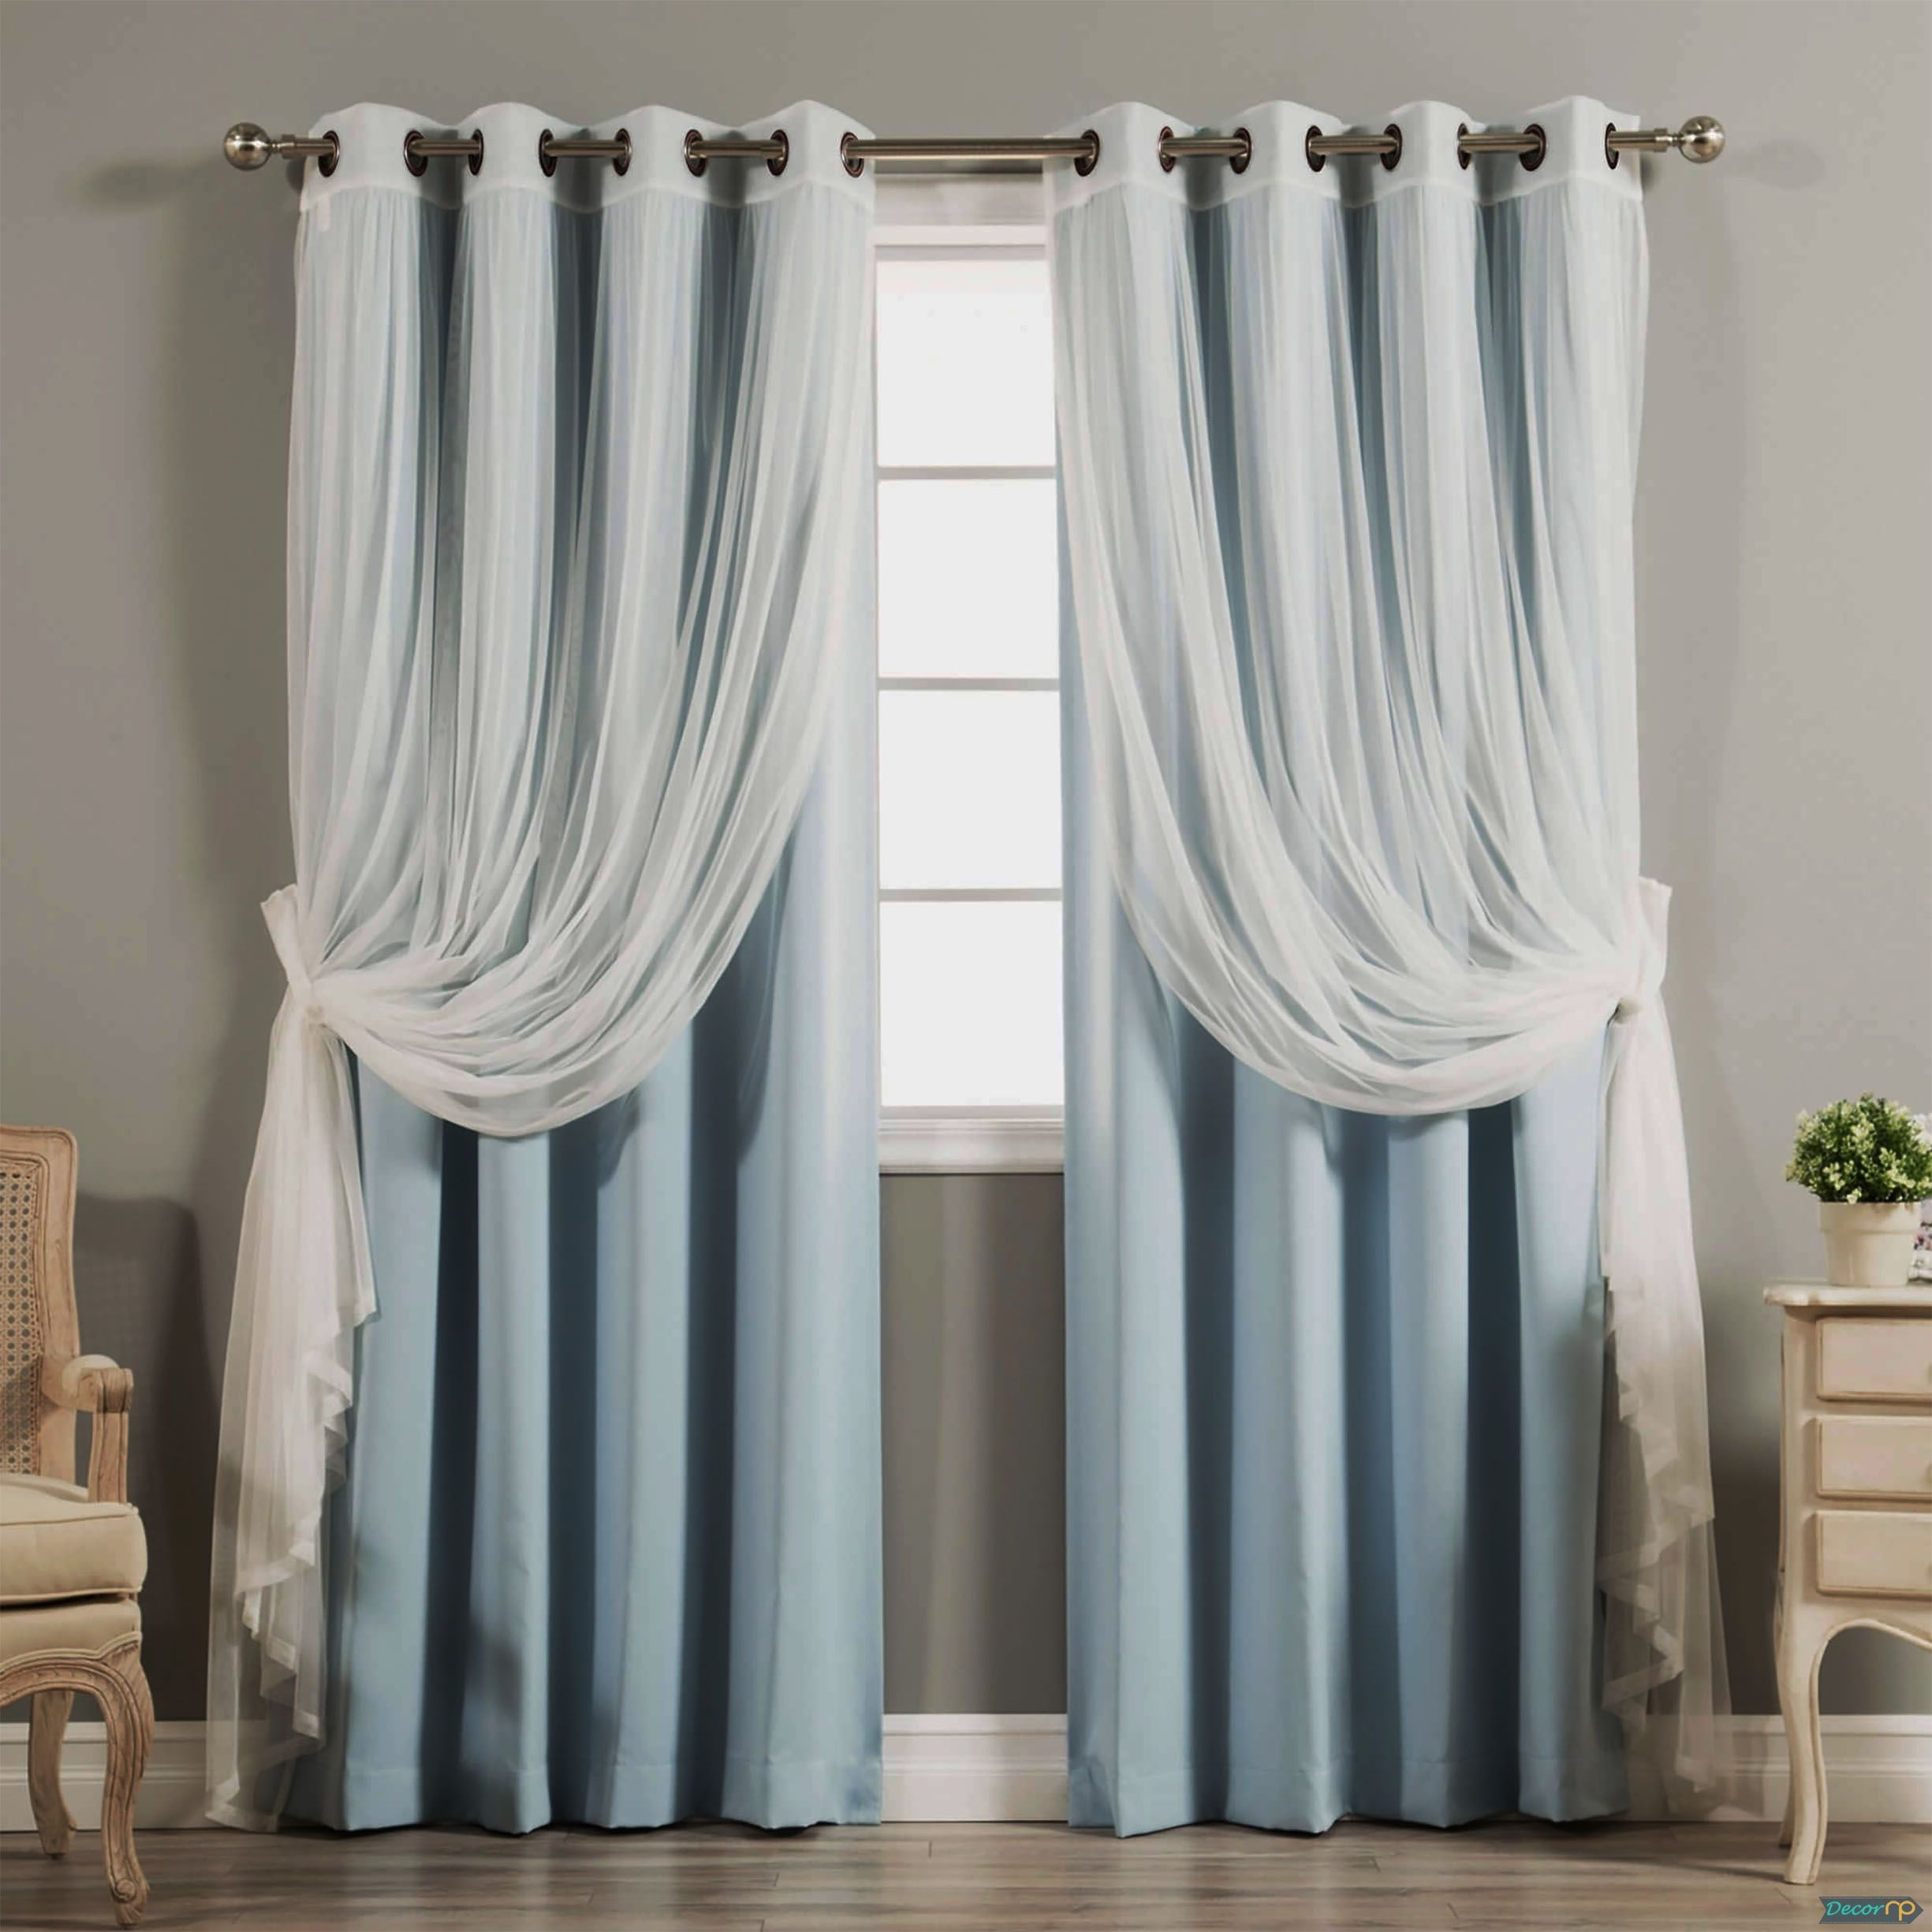 Account Suspended Curtains Living Room Modern Window Curt